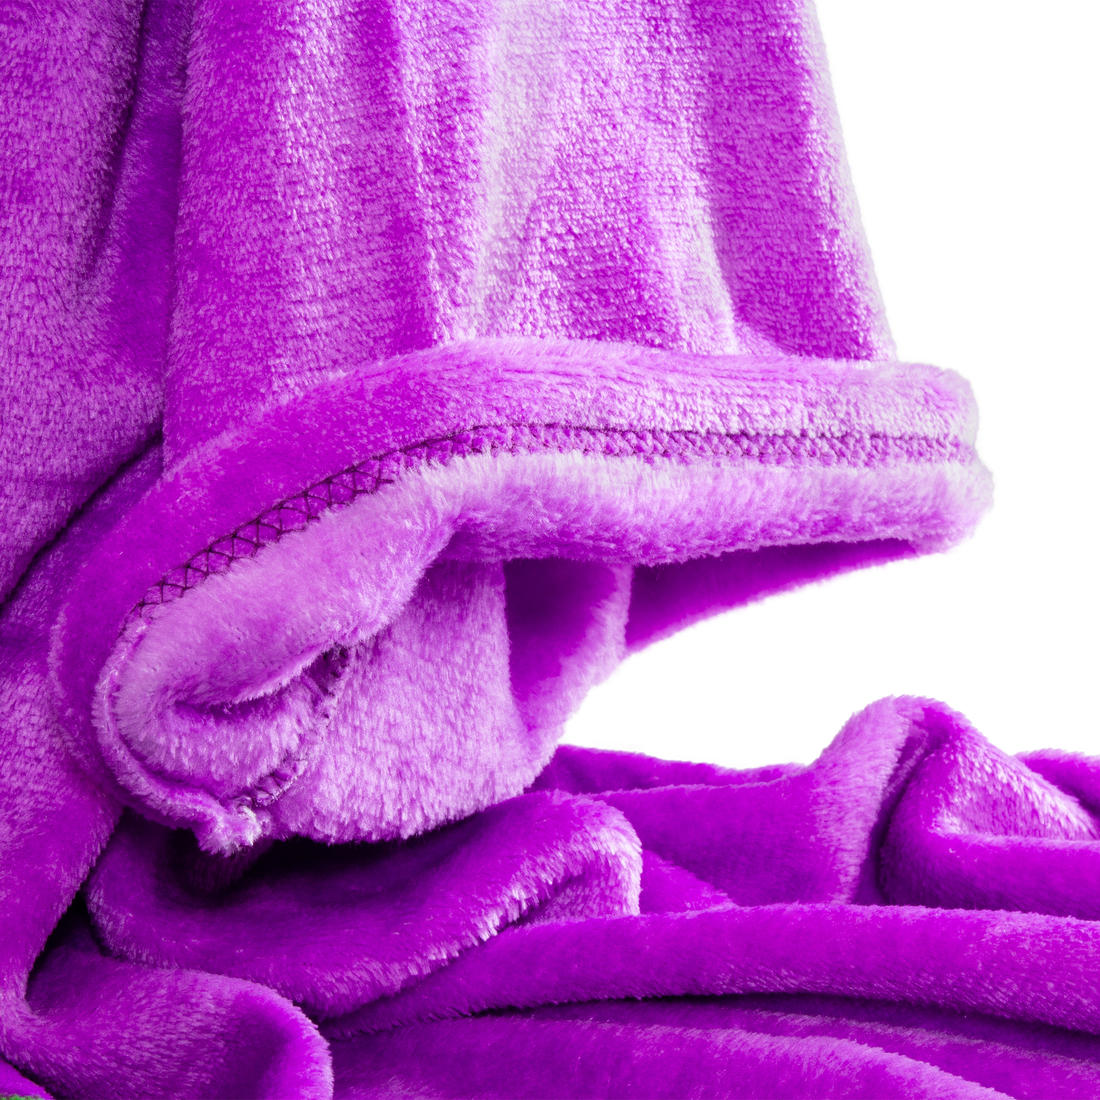 Purple Tentacle Blanket With Sleeves Getdigital